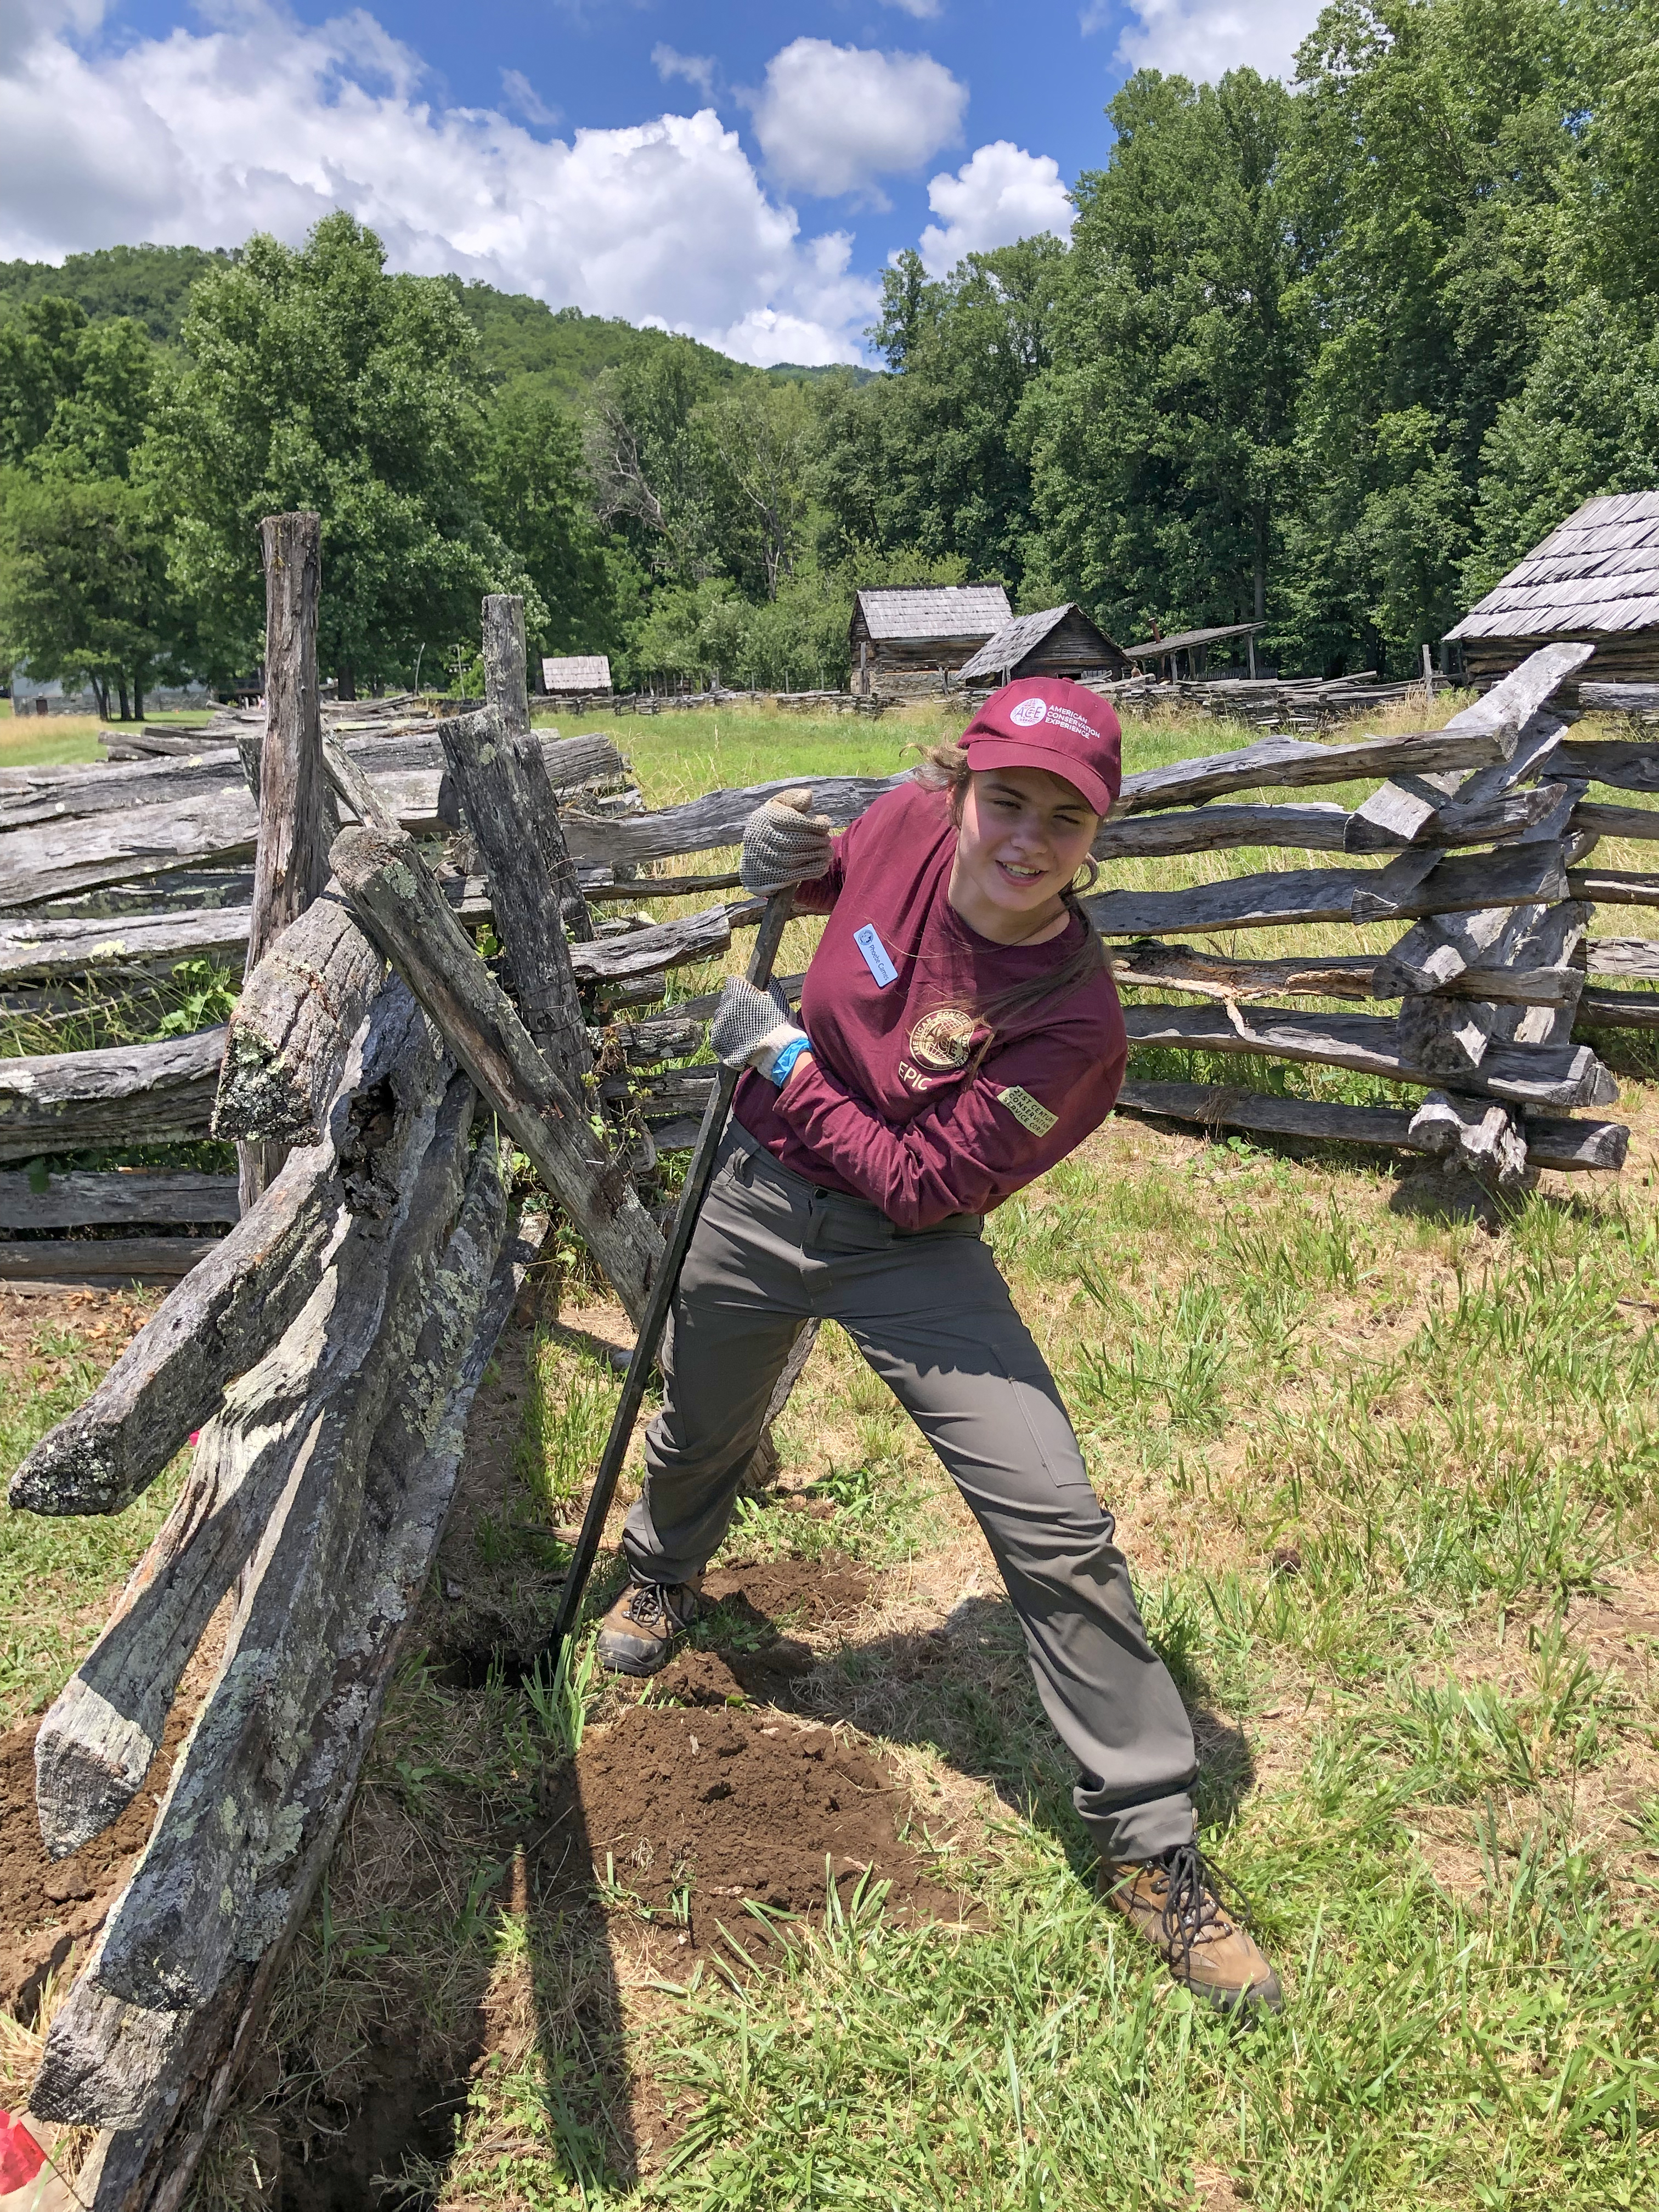 Great Smoky Mountains National Park summer intern Phoebe Carnes of Whittier, NC, struggles to loosen a large underground rock with a pry bar while repairing a fence at the Oconaluftee Visitor Center. Courtesy NPS.